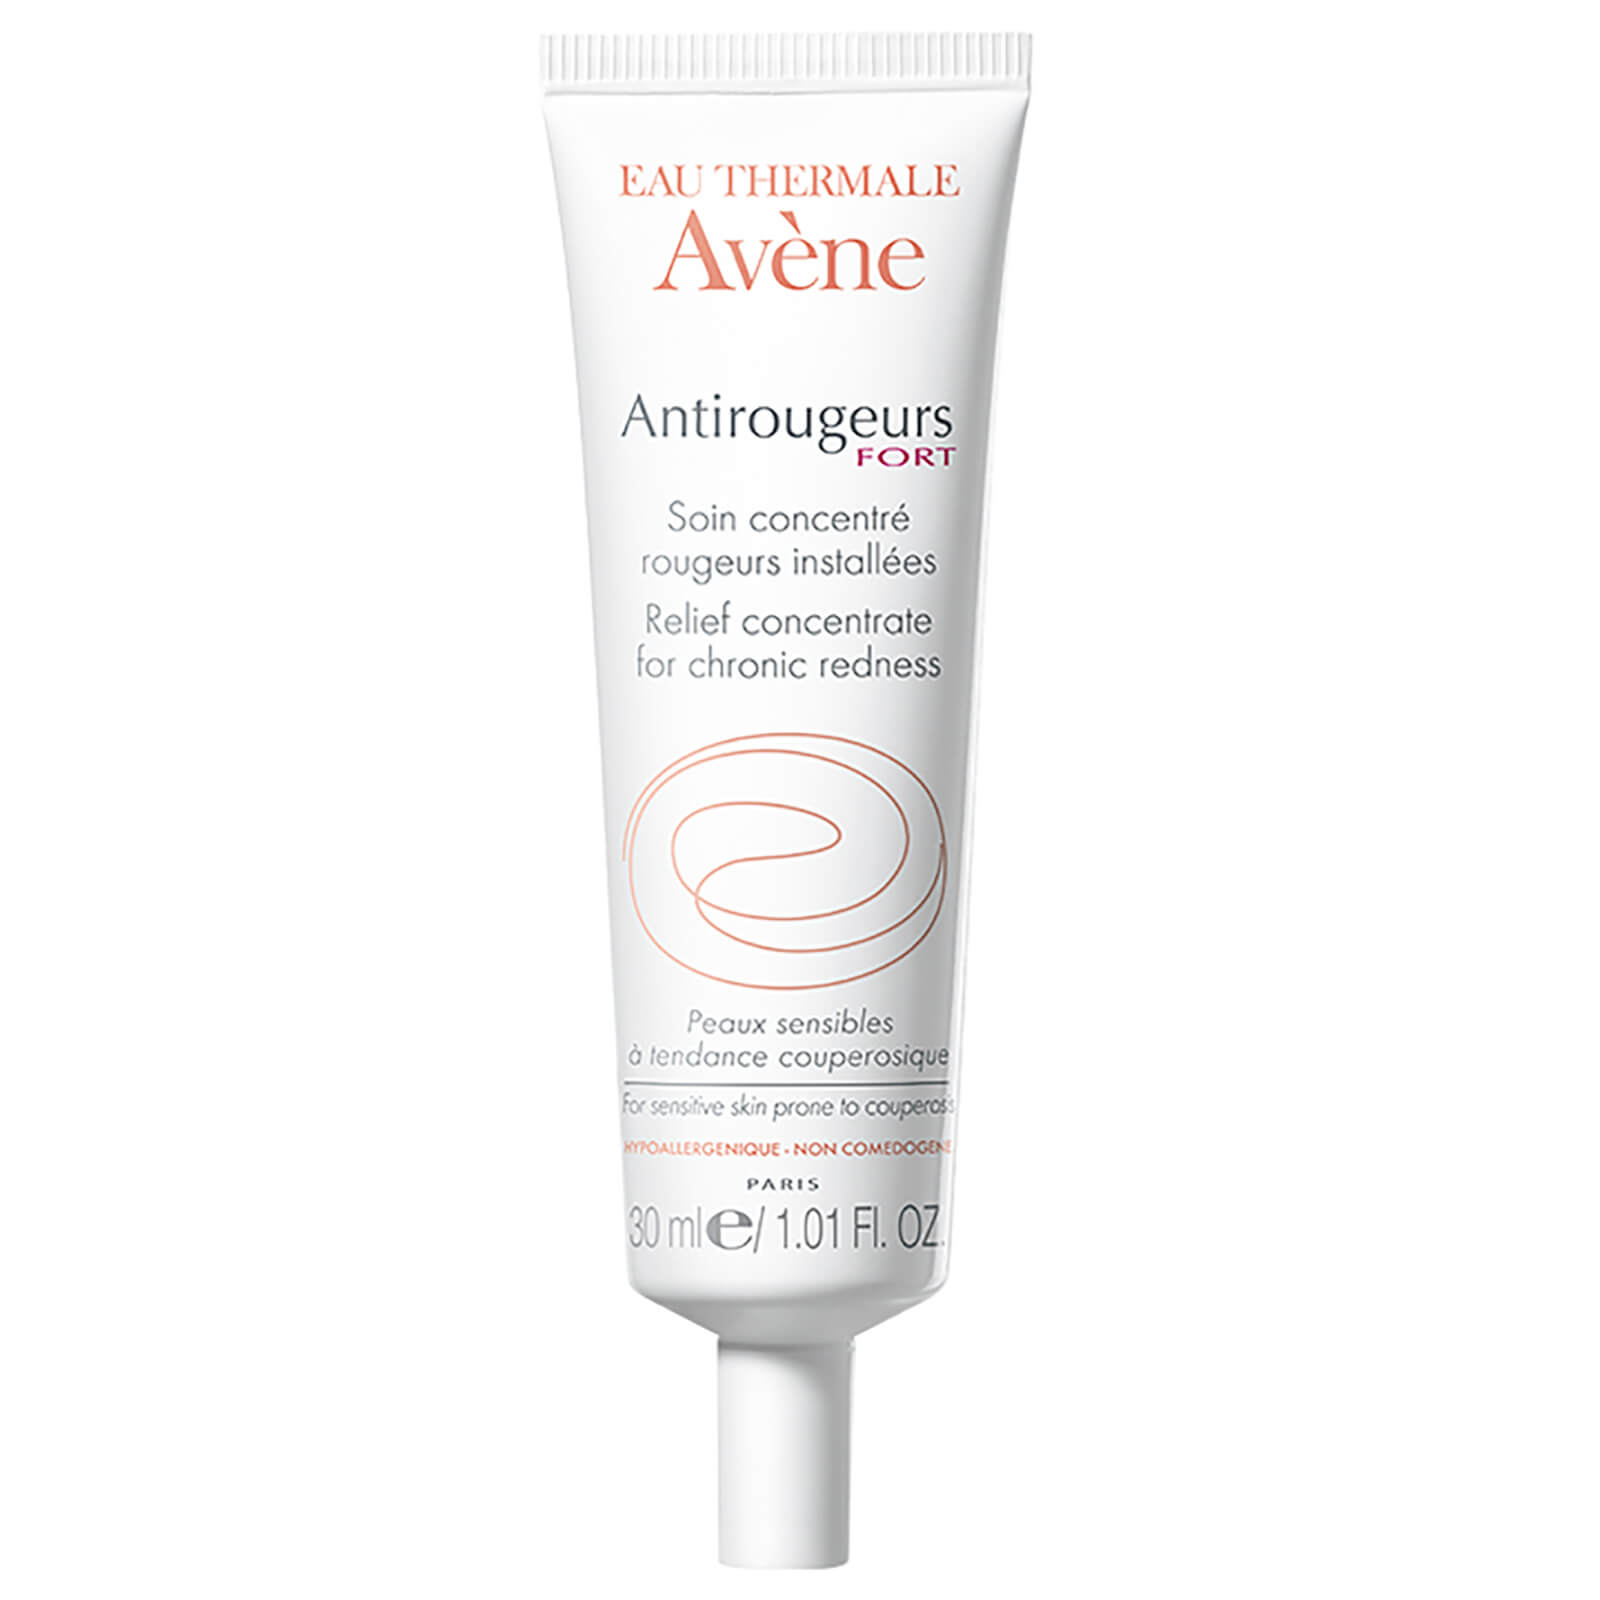 Avene Antirougeurs Fort Relief Concentrate For Chronic Redness